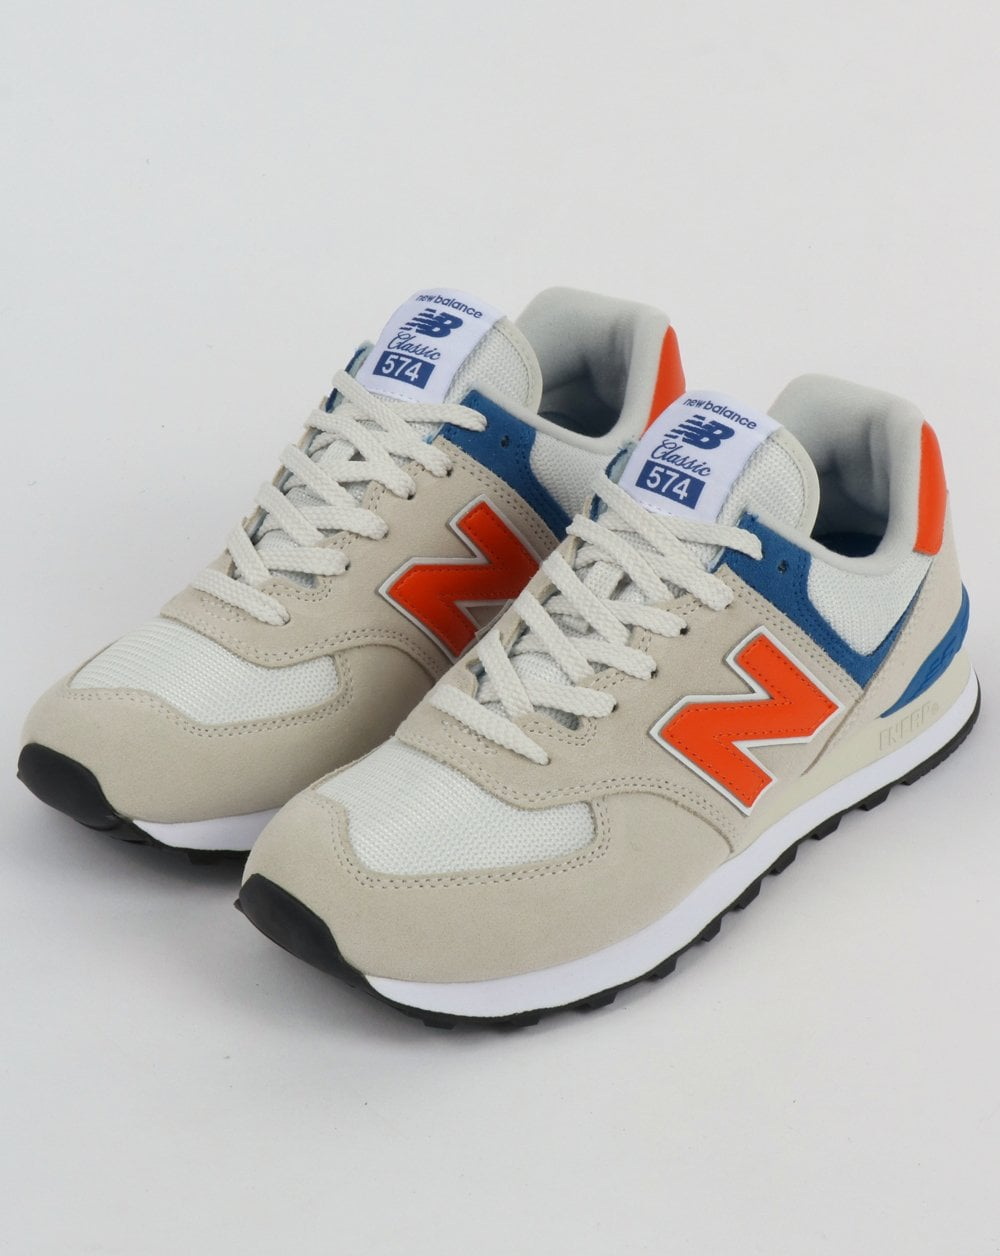 hot sale online 98434 d3d62 New Balance 574 Trainers White/Orange